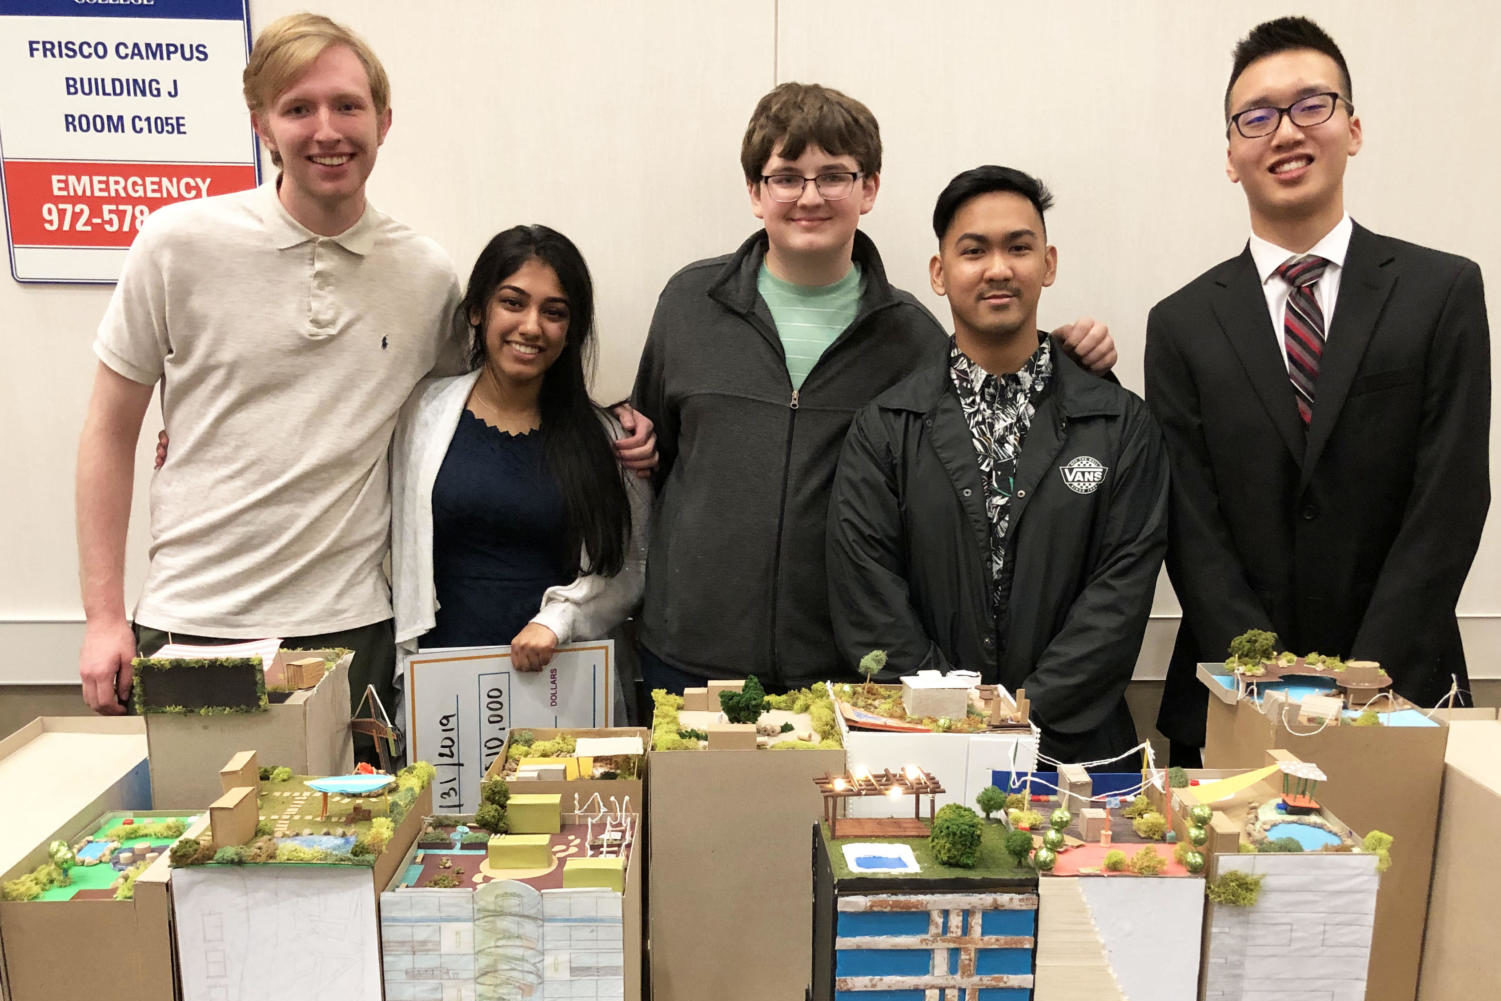 Architecture students Alan Weng, Edwin Delima, Brooks Feldker, Derek Holdge and Aishwarya